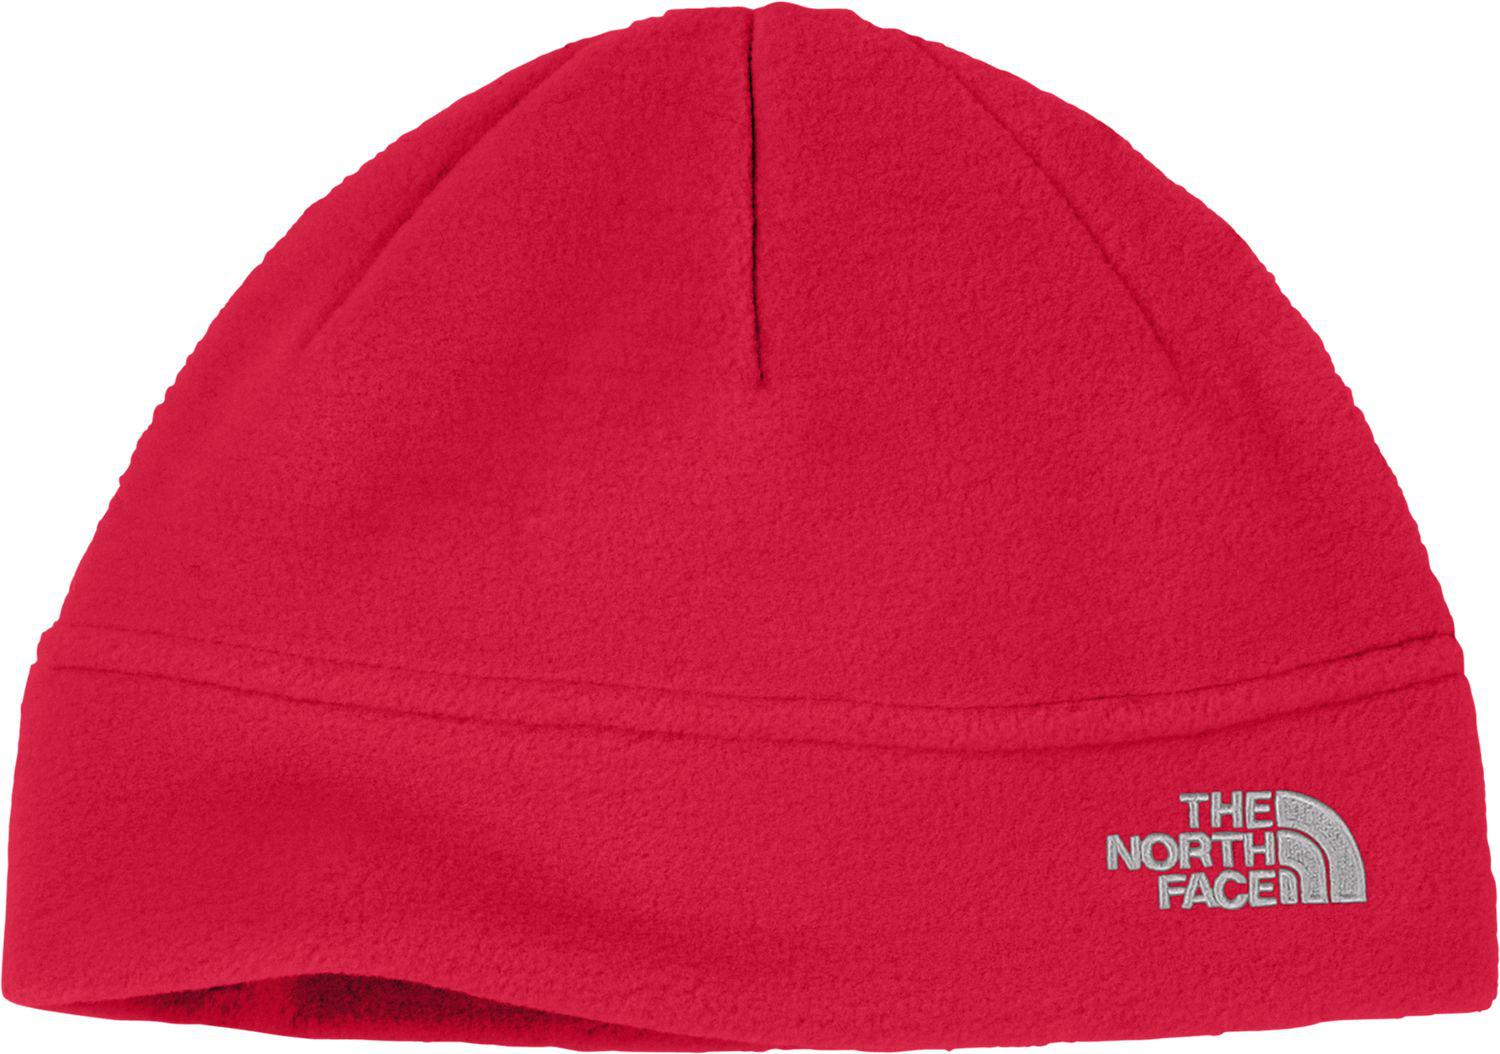 40ef1420 Lyst - The North Face Tnf Standard Issue Beanie in Red for Men